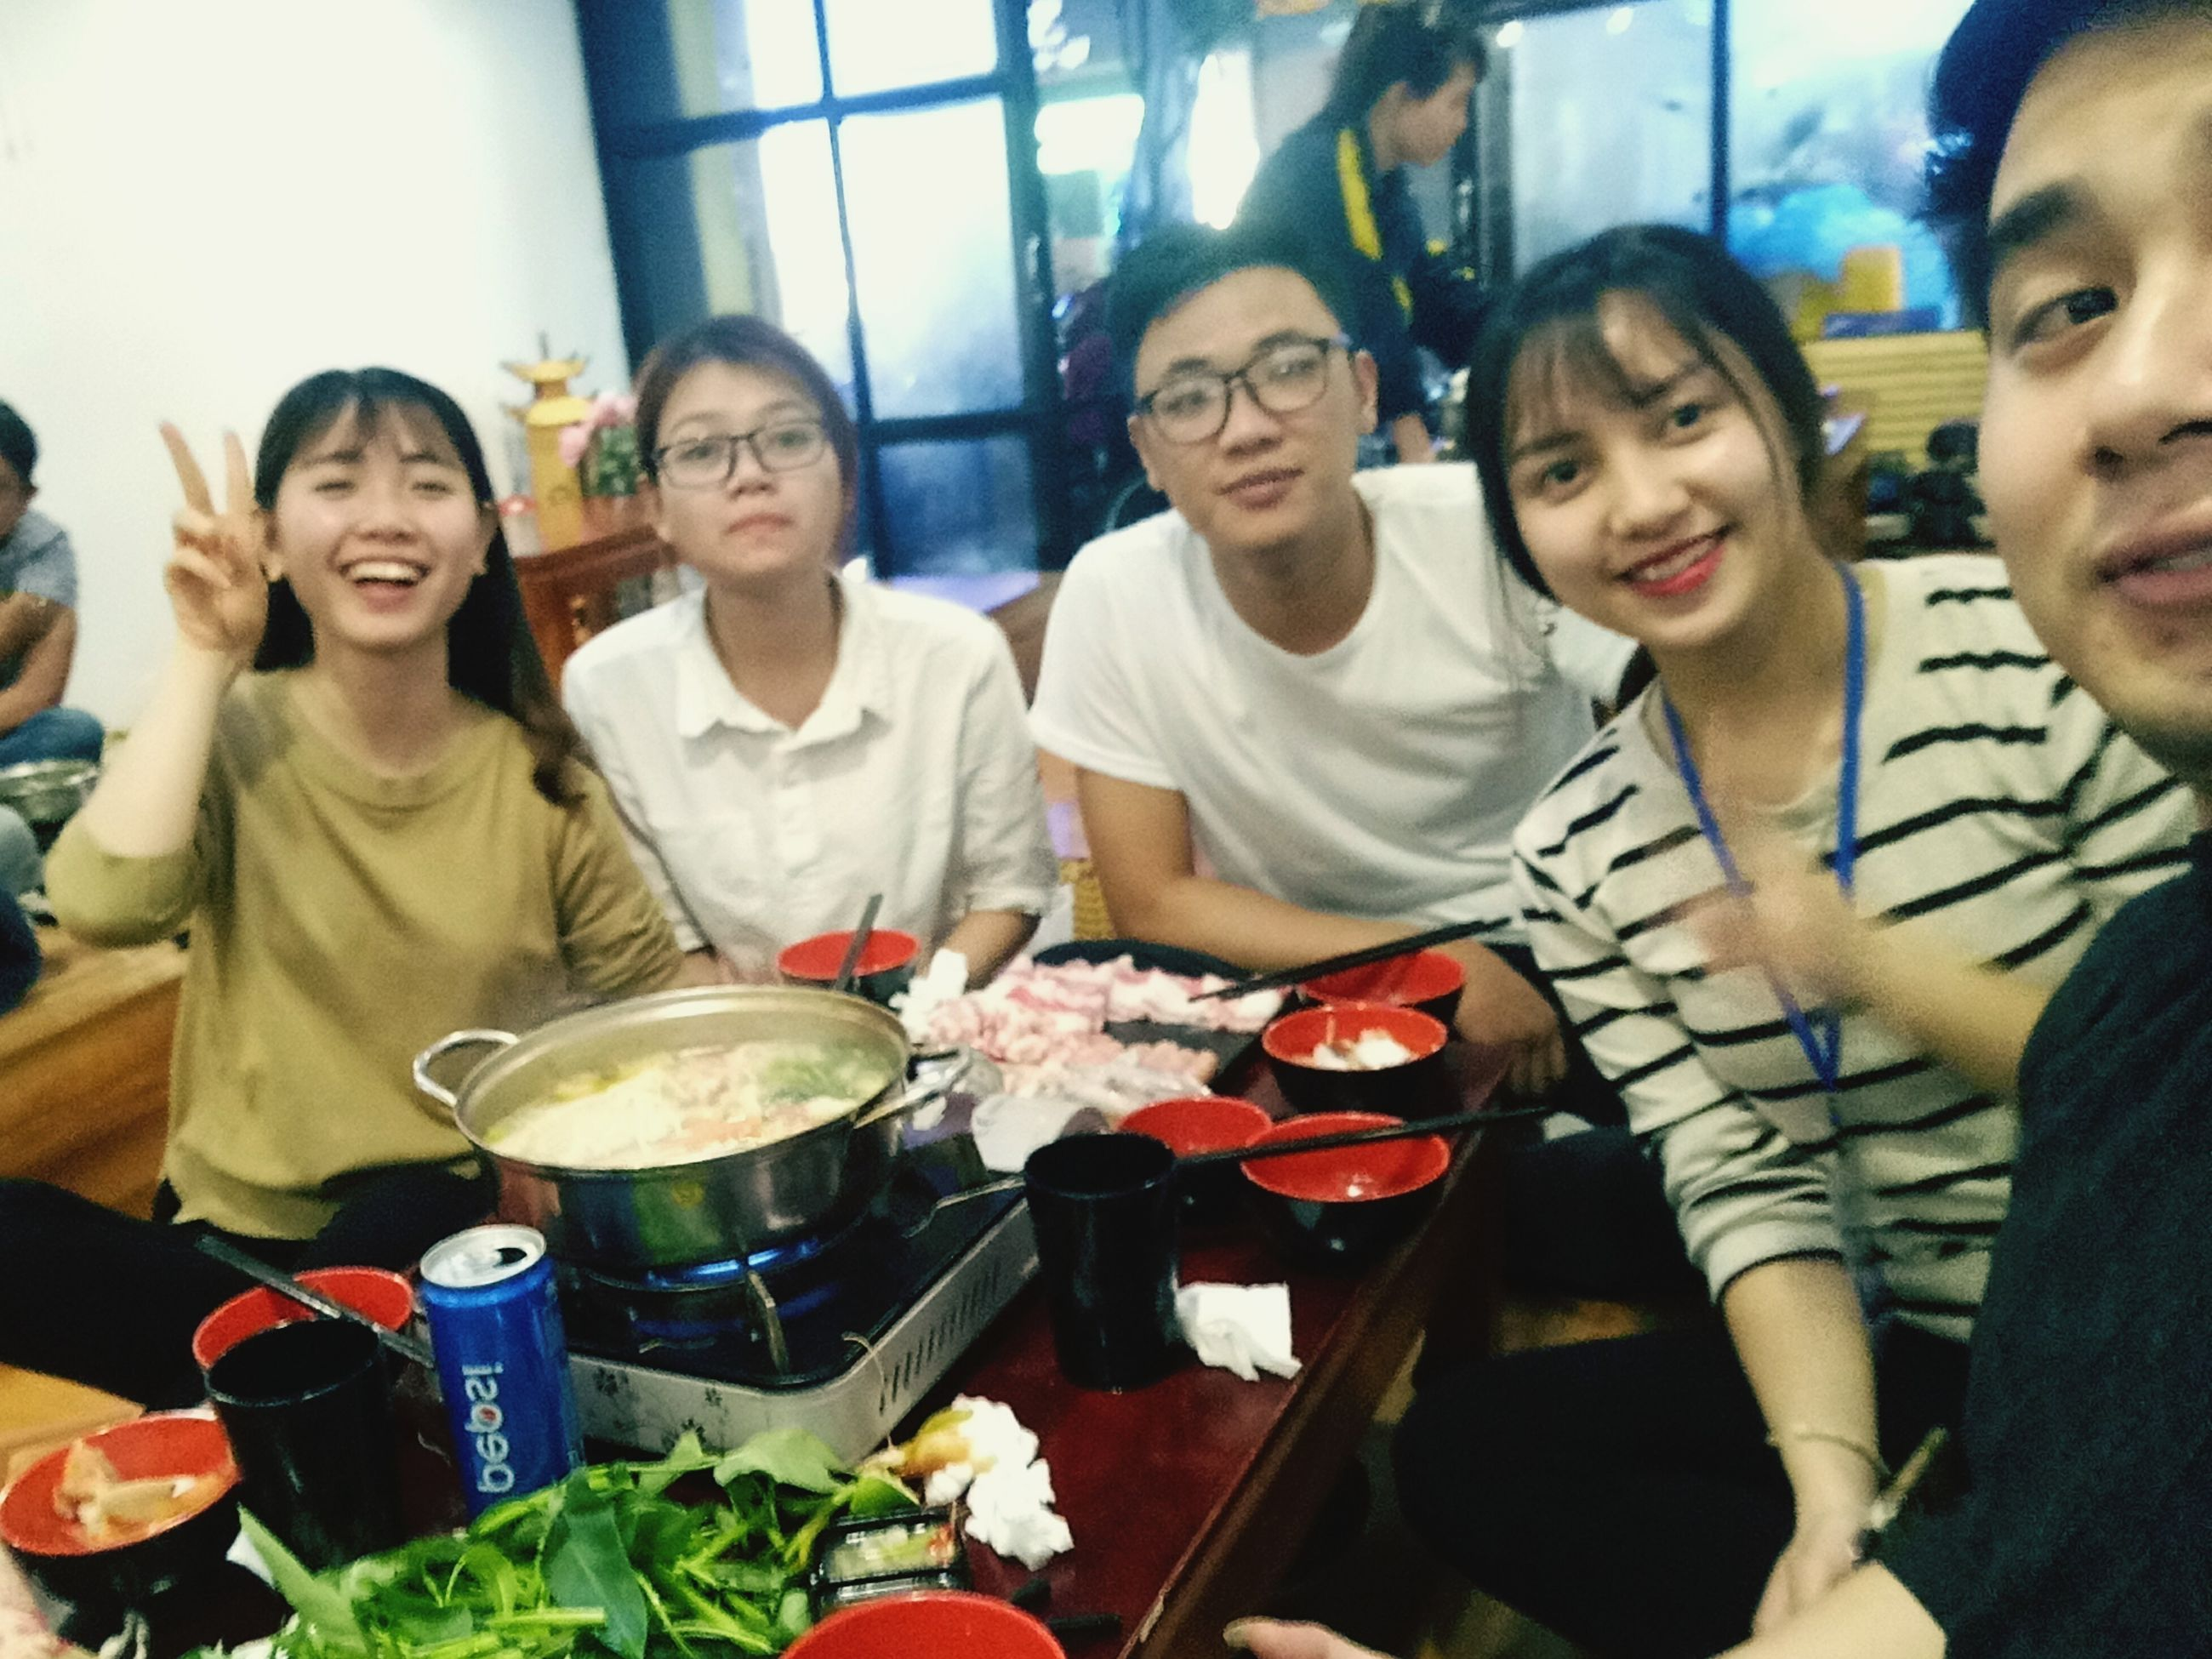 portrait, indoors, looking at camera, eyeglasses, smiling, happiness, lifestyles, real people, group of people, togetherness, day, people